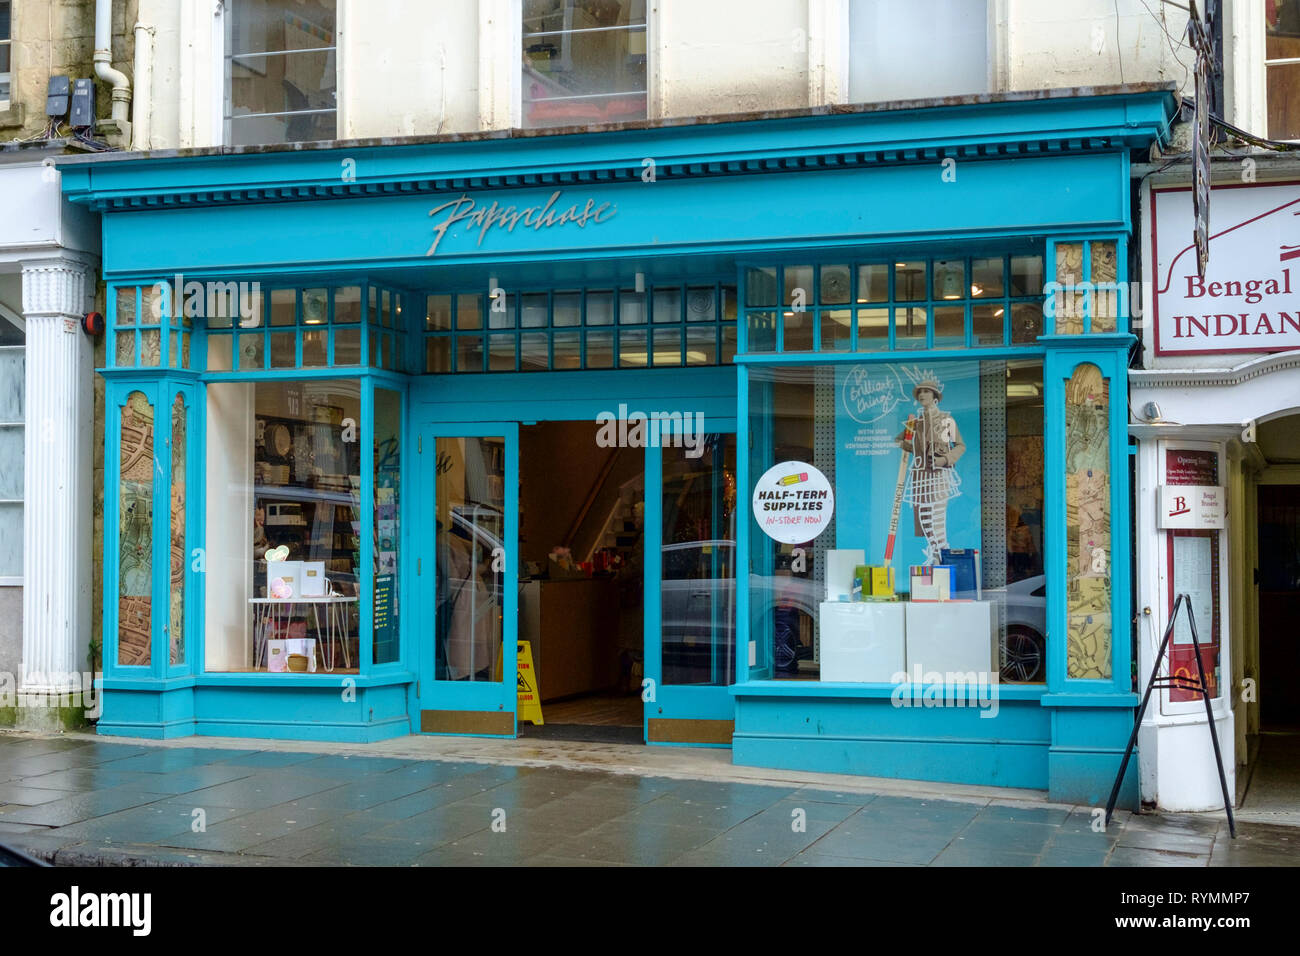 Shop fronts in the city of Bath somerset UK Paperchase - Stock Image